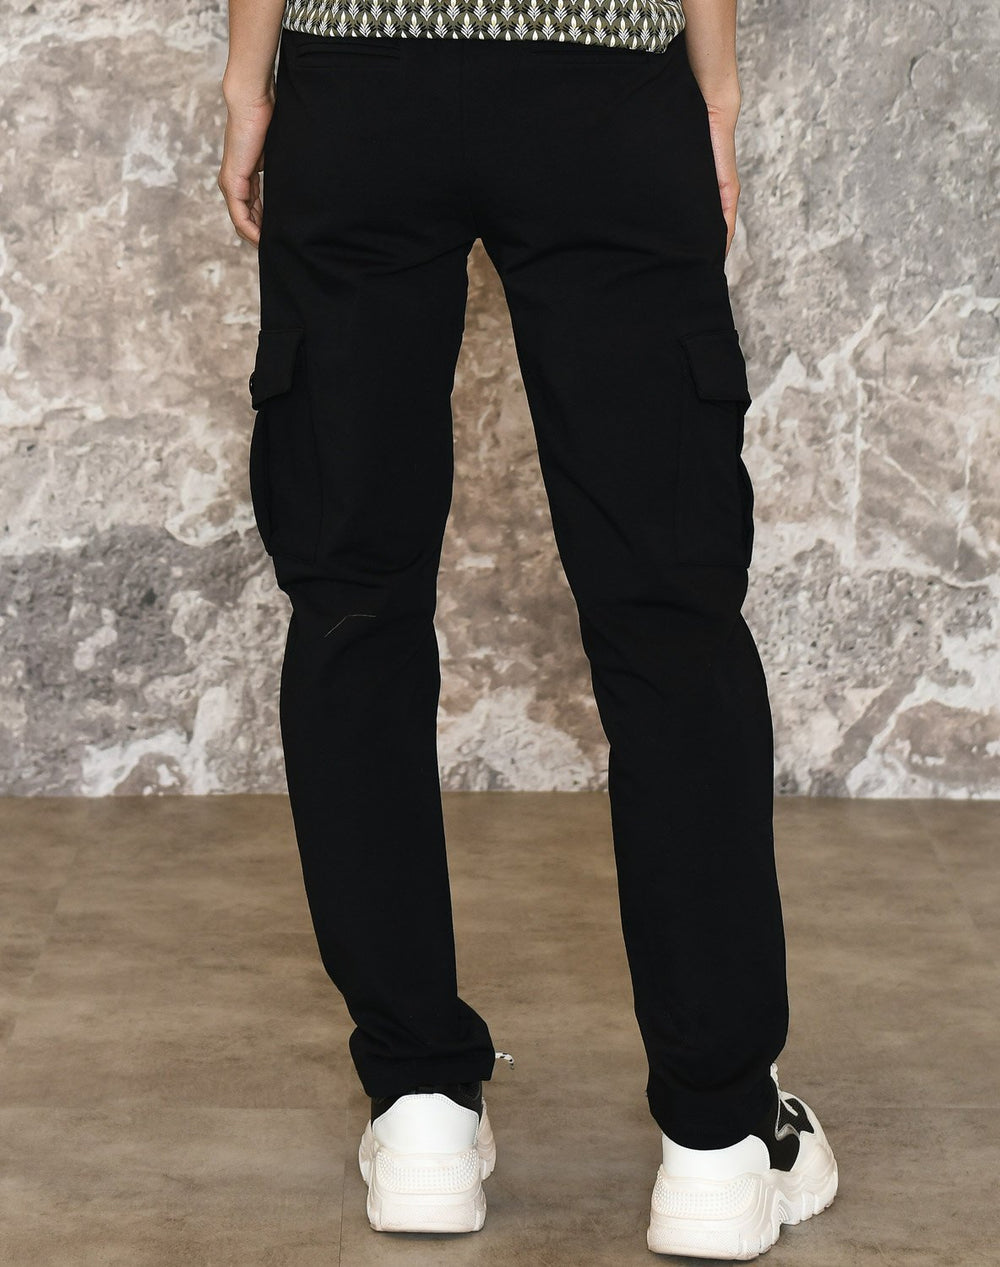 Ofelia Lara new pants black - Online-Mode